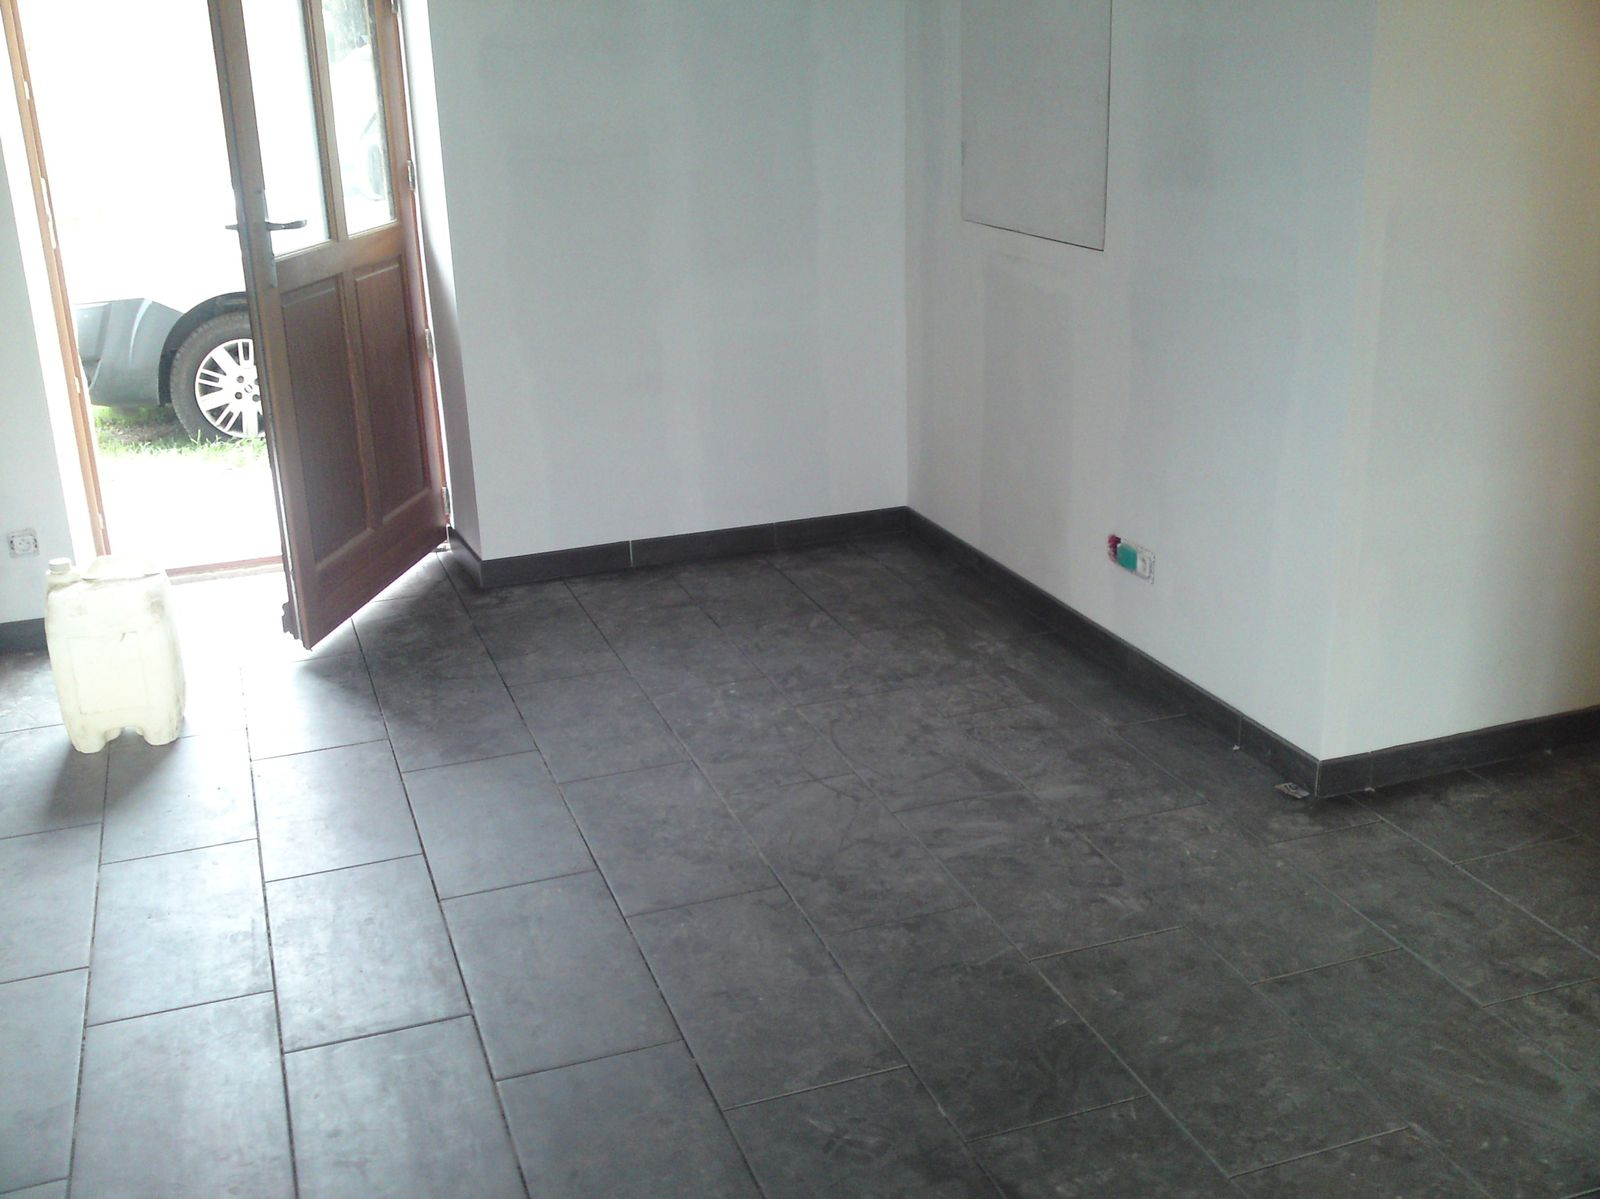 Pose des plinthes renovation d 39 une fermette en bourgogne for Plinthes carrelage